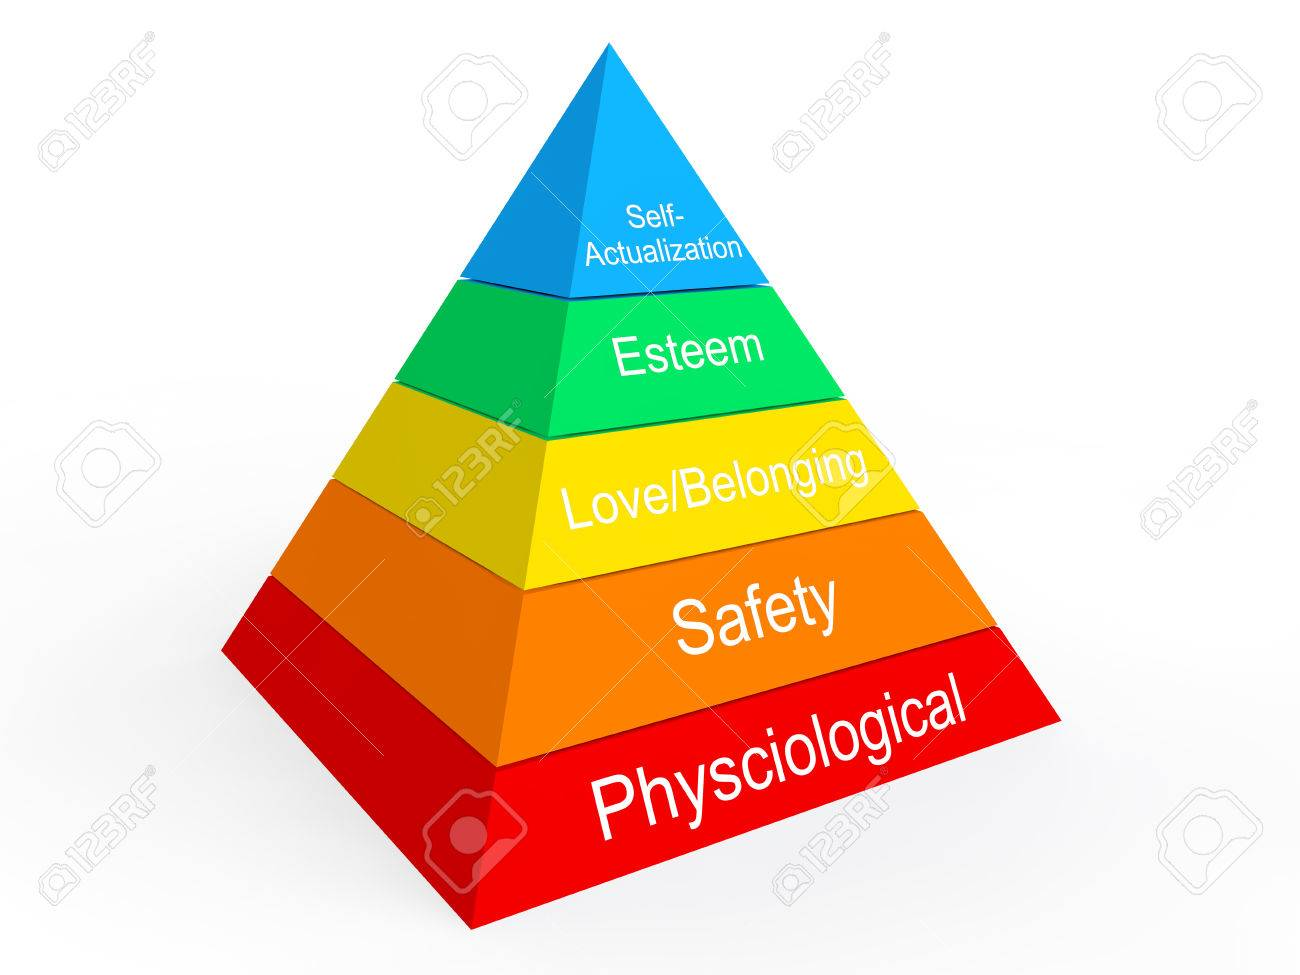 Maslow hierarchy of needs - 43743884